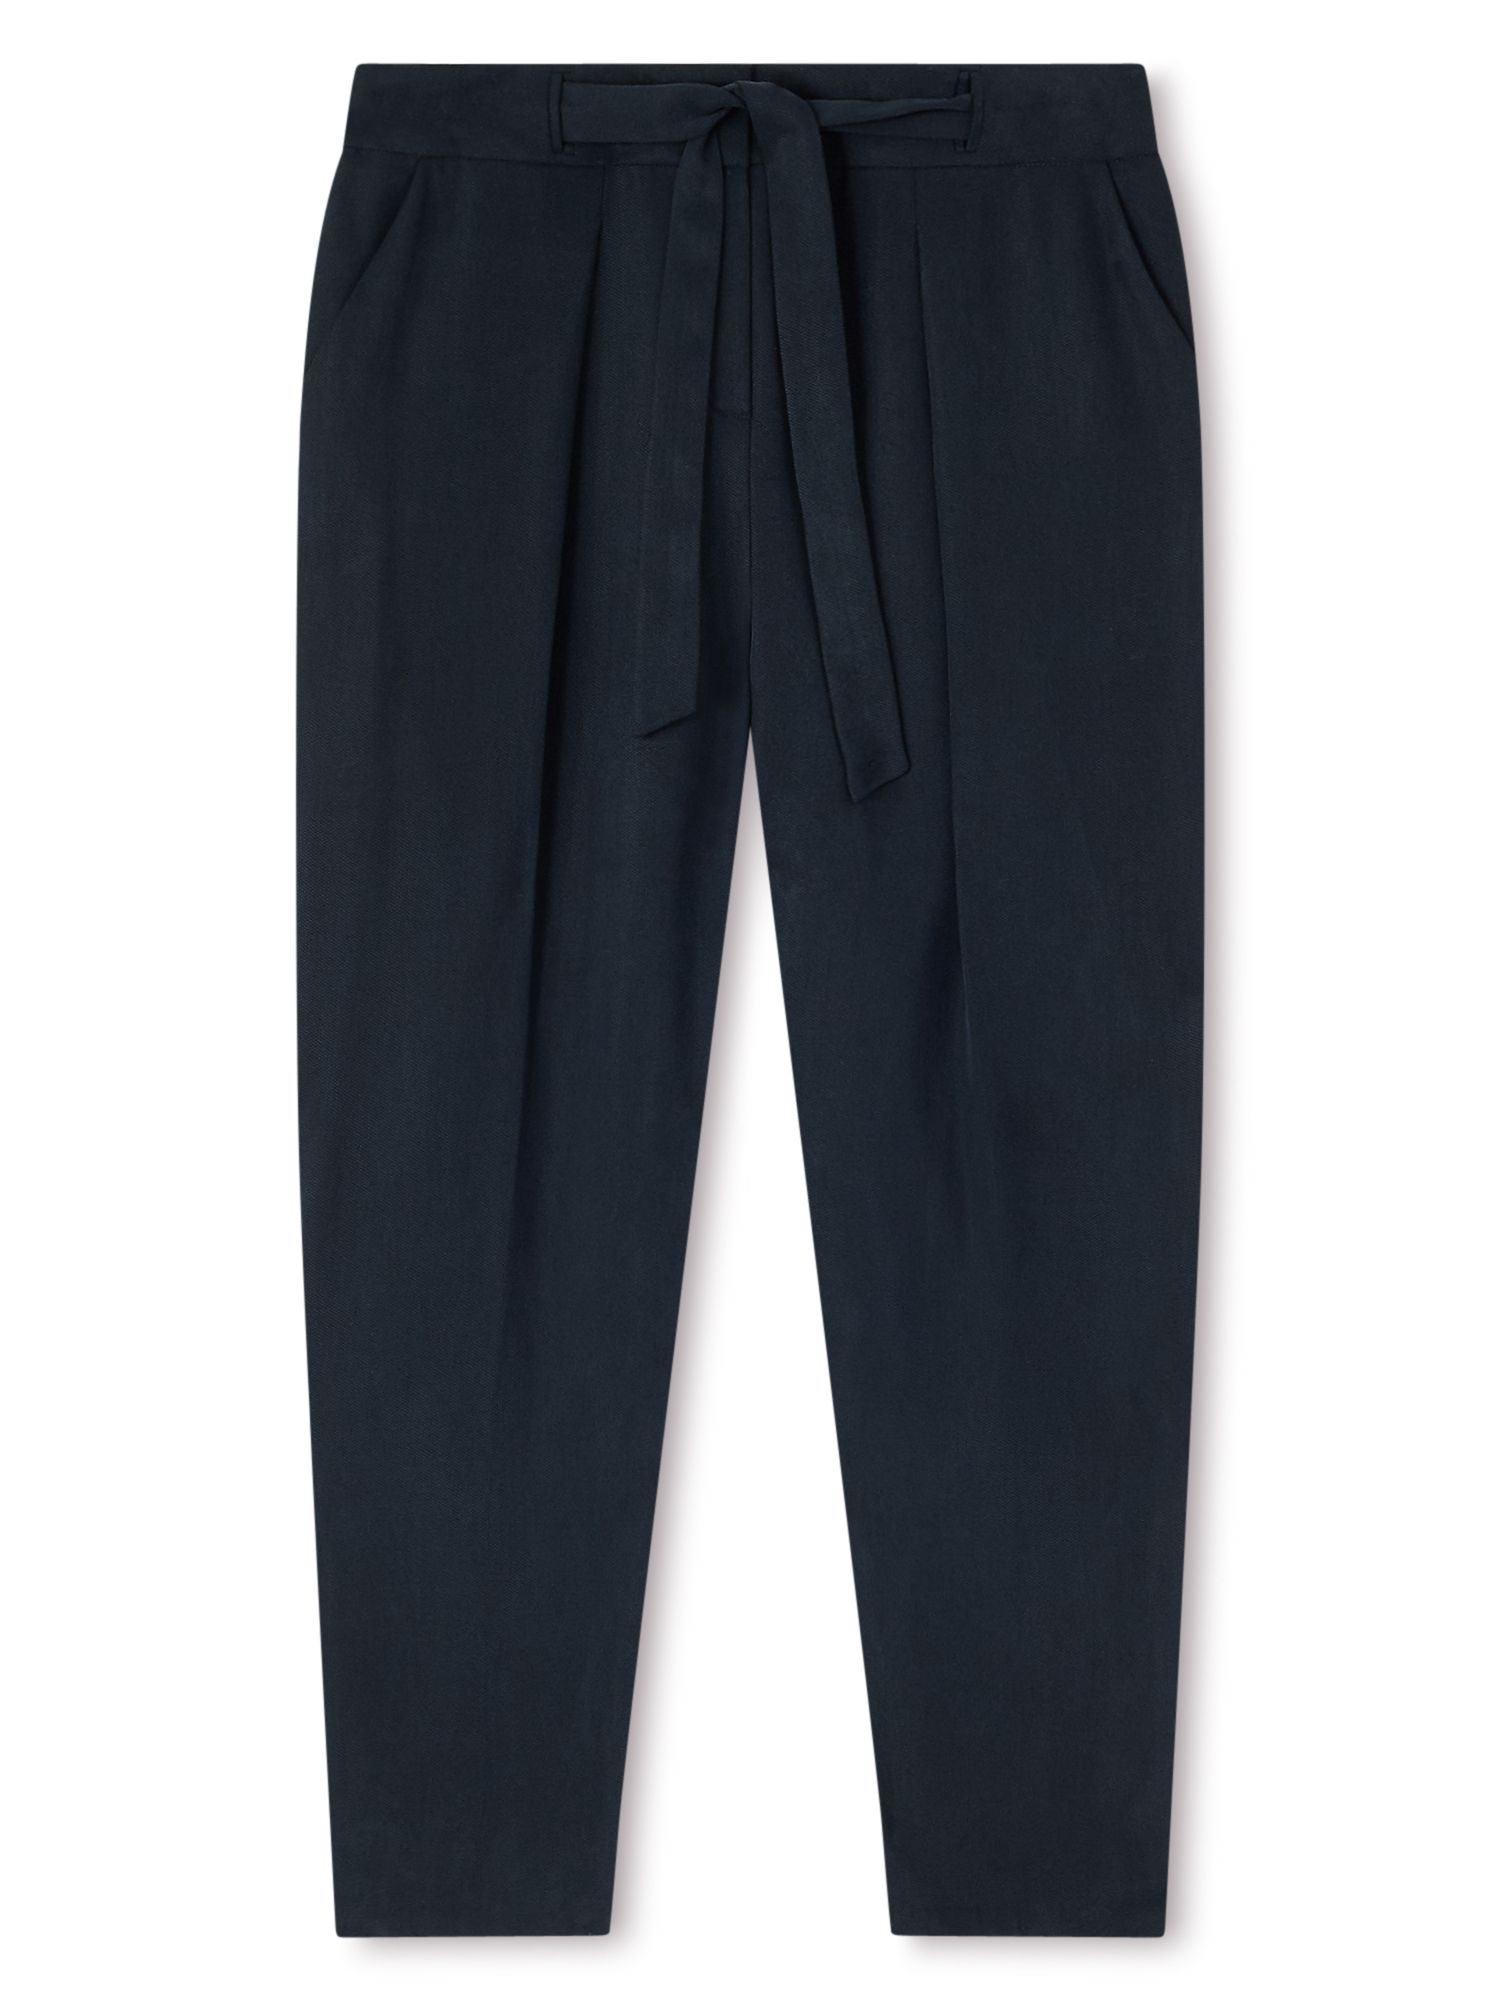 Dash Tencel Tie Waist Trousers Navy Navy